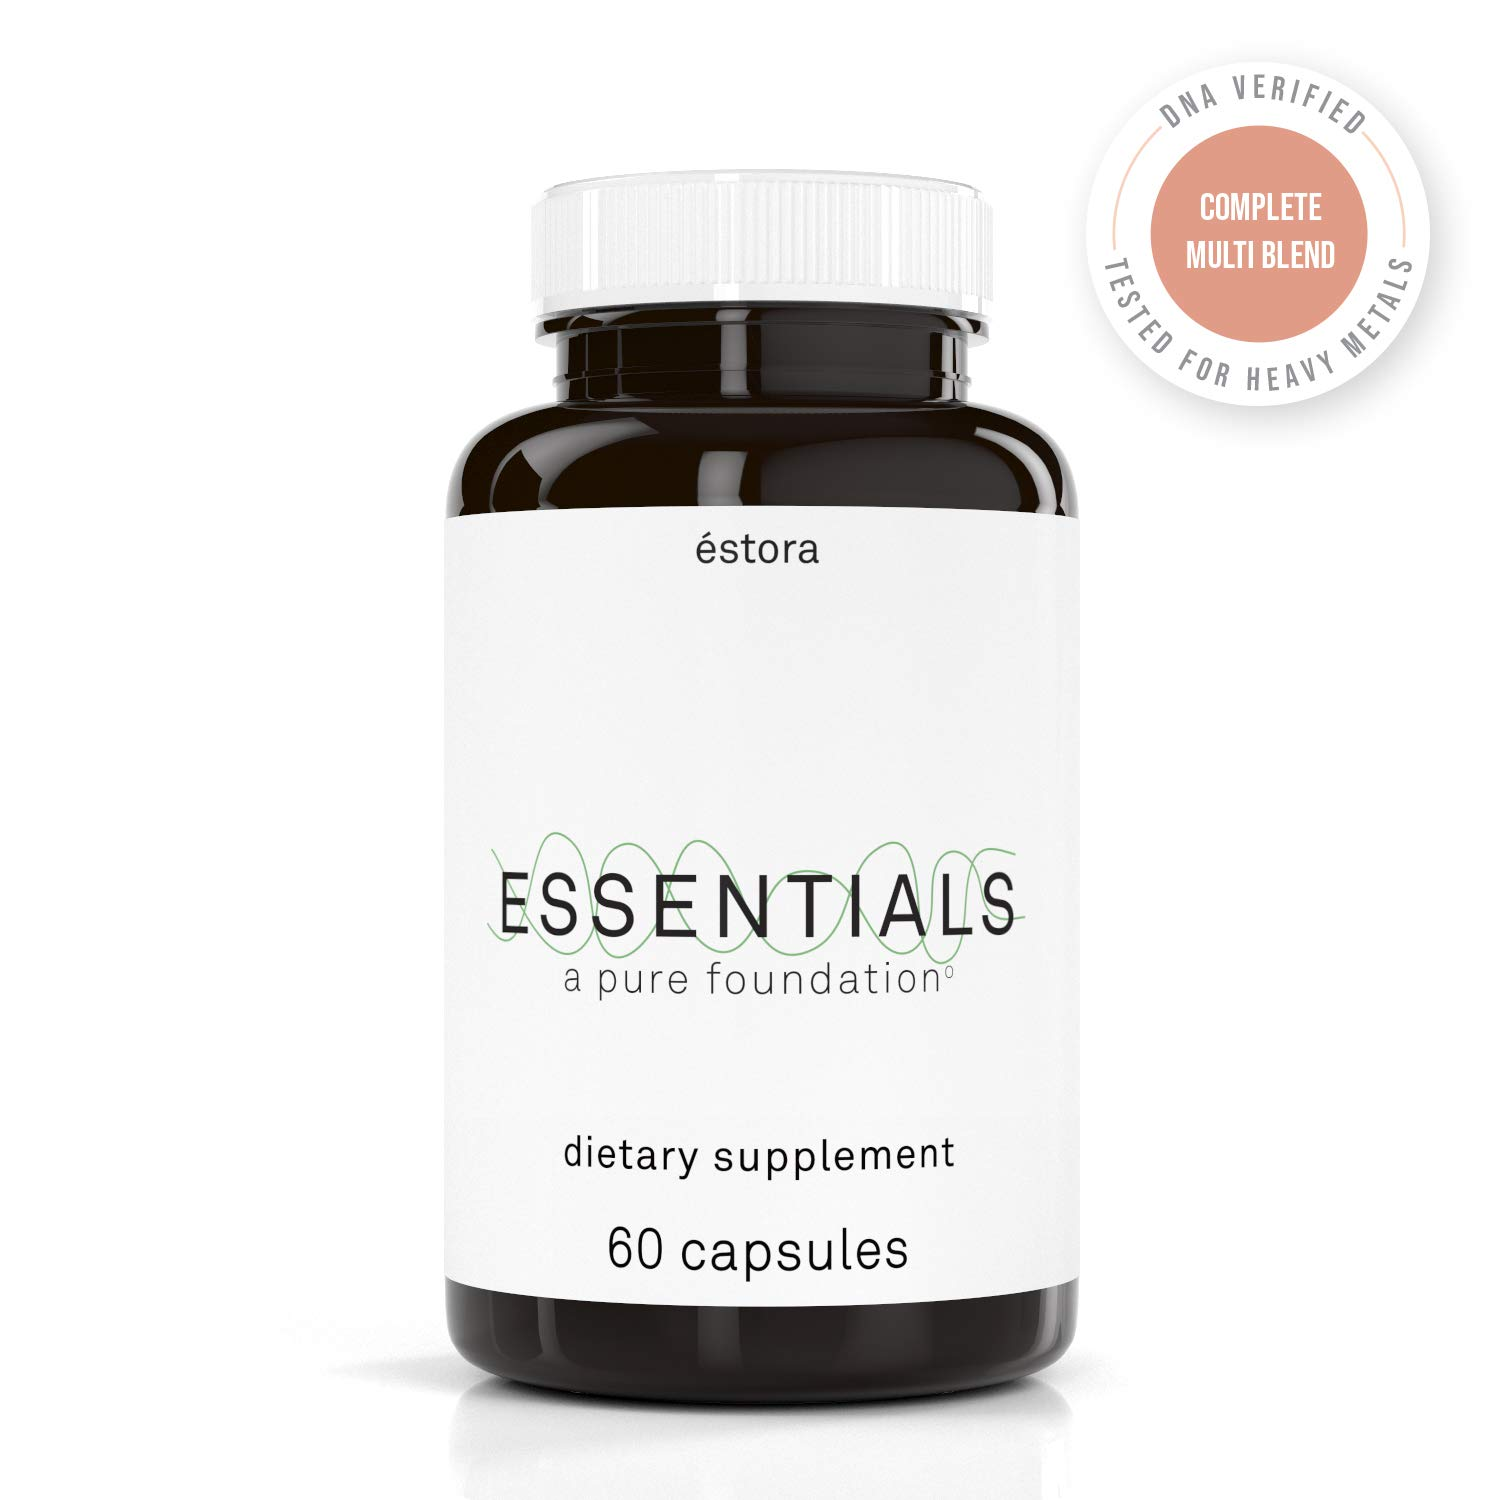 ESTORA Essentials Vegan Multivitamin Supplement 60 Vegetable Capsules